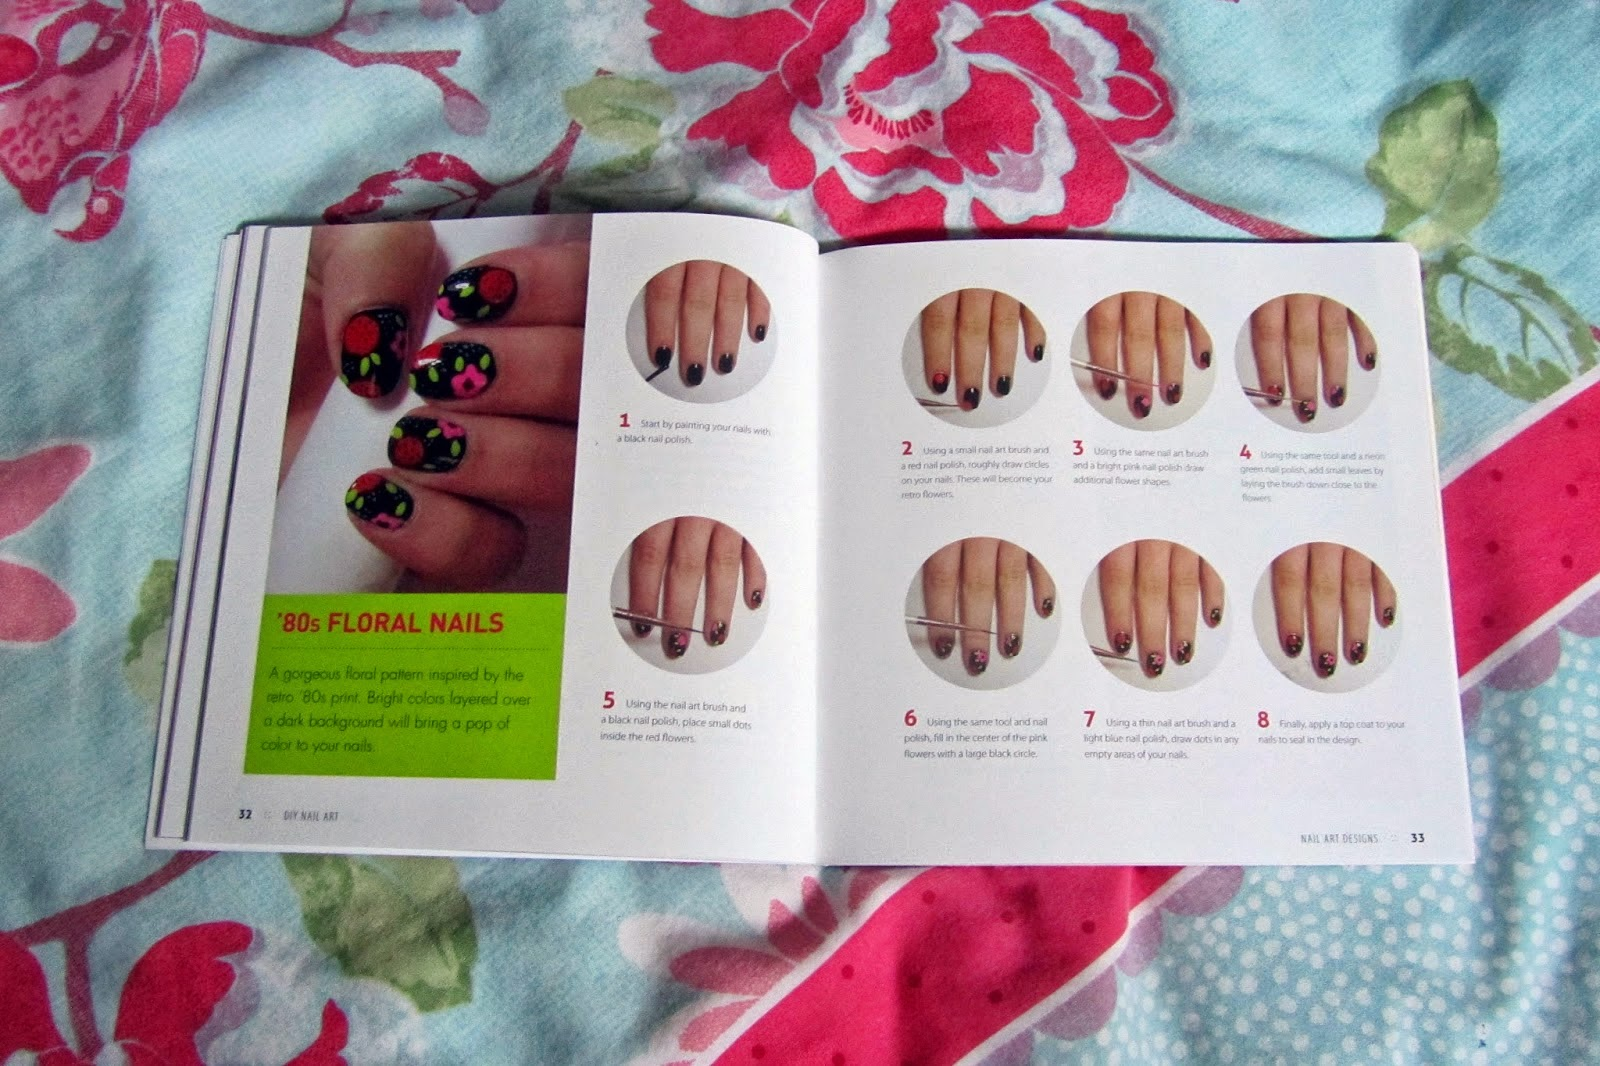 nail art book 11 mar 2010